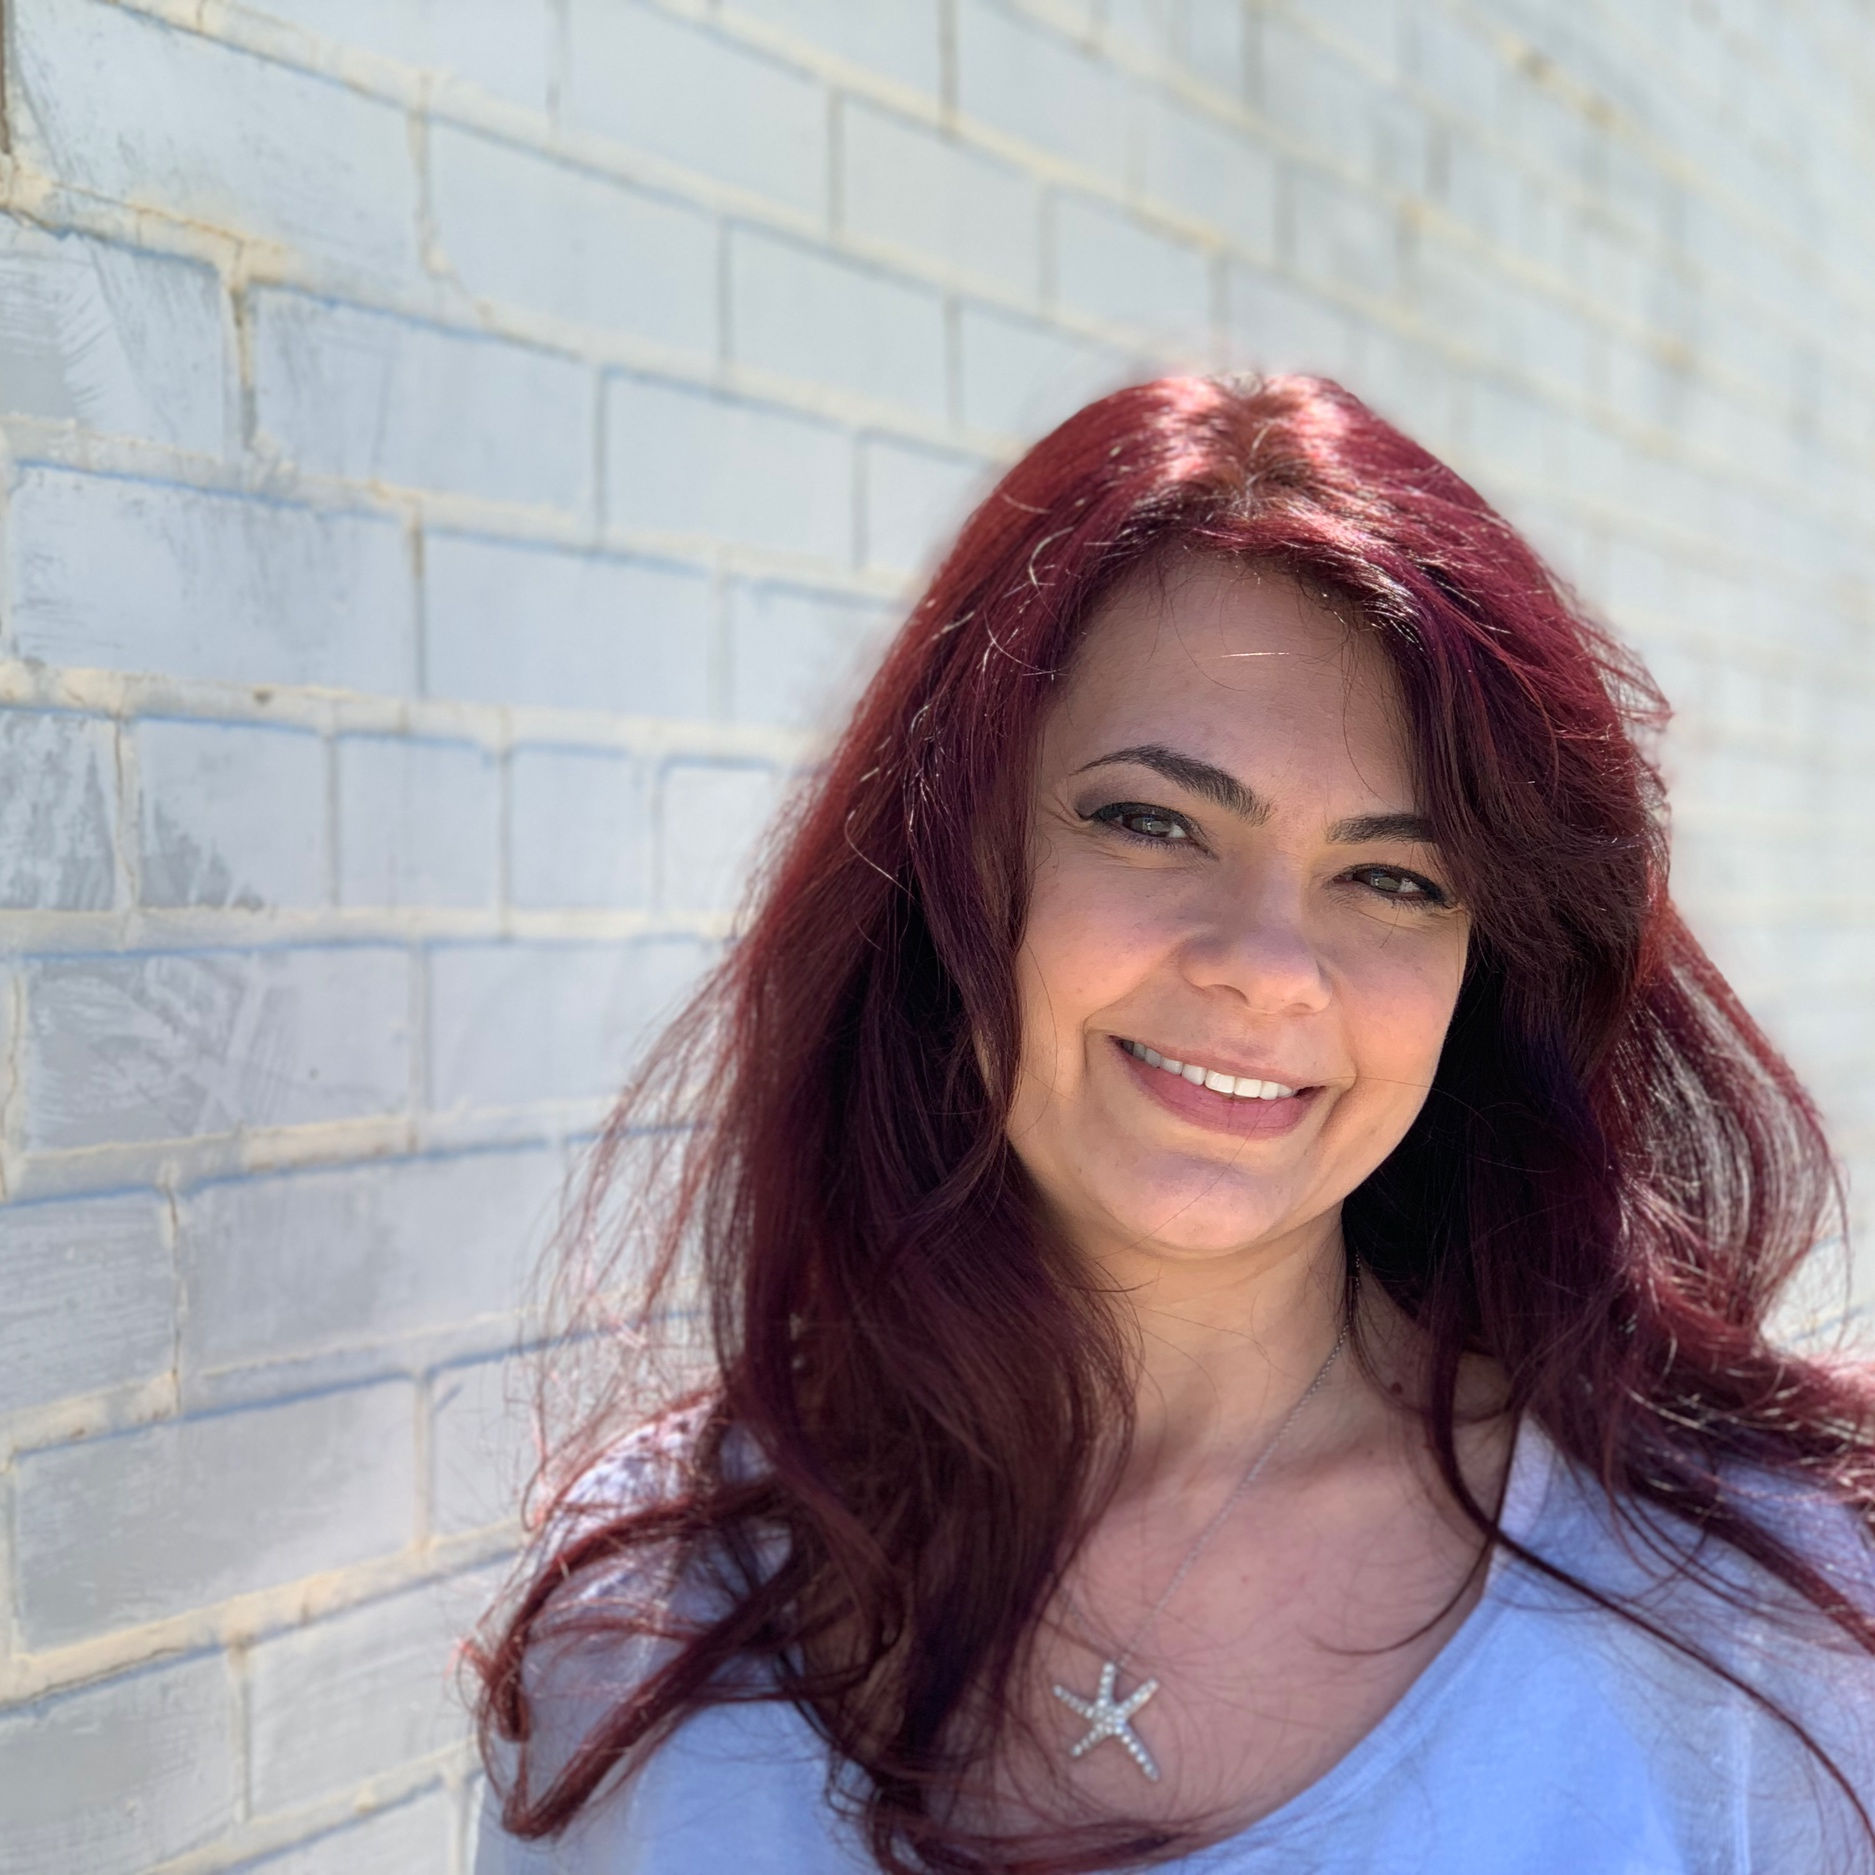 Paula Almeida, Financial Officer     paula@westmarketchurch.org    Paula Almeida joins our staff with more than 10 years of international accounting experience, most recently working for Albaad USA Inc. in Reidsville. Originally from Portugal, she has lived in North Carolina for 4 years. When she is not working, Paula enjoys cooking gourmet meals with her husband Al, in their new outdoor kitchen space. She also enjoys spending time with her 3 dogs, baking, crafting and exploring everything North Carolina has to offer.